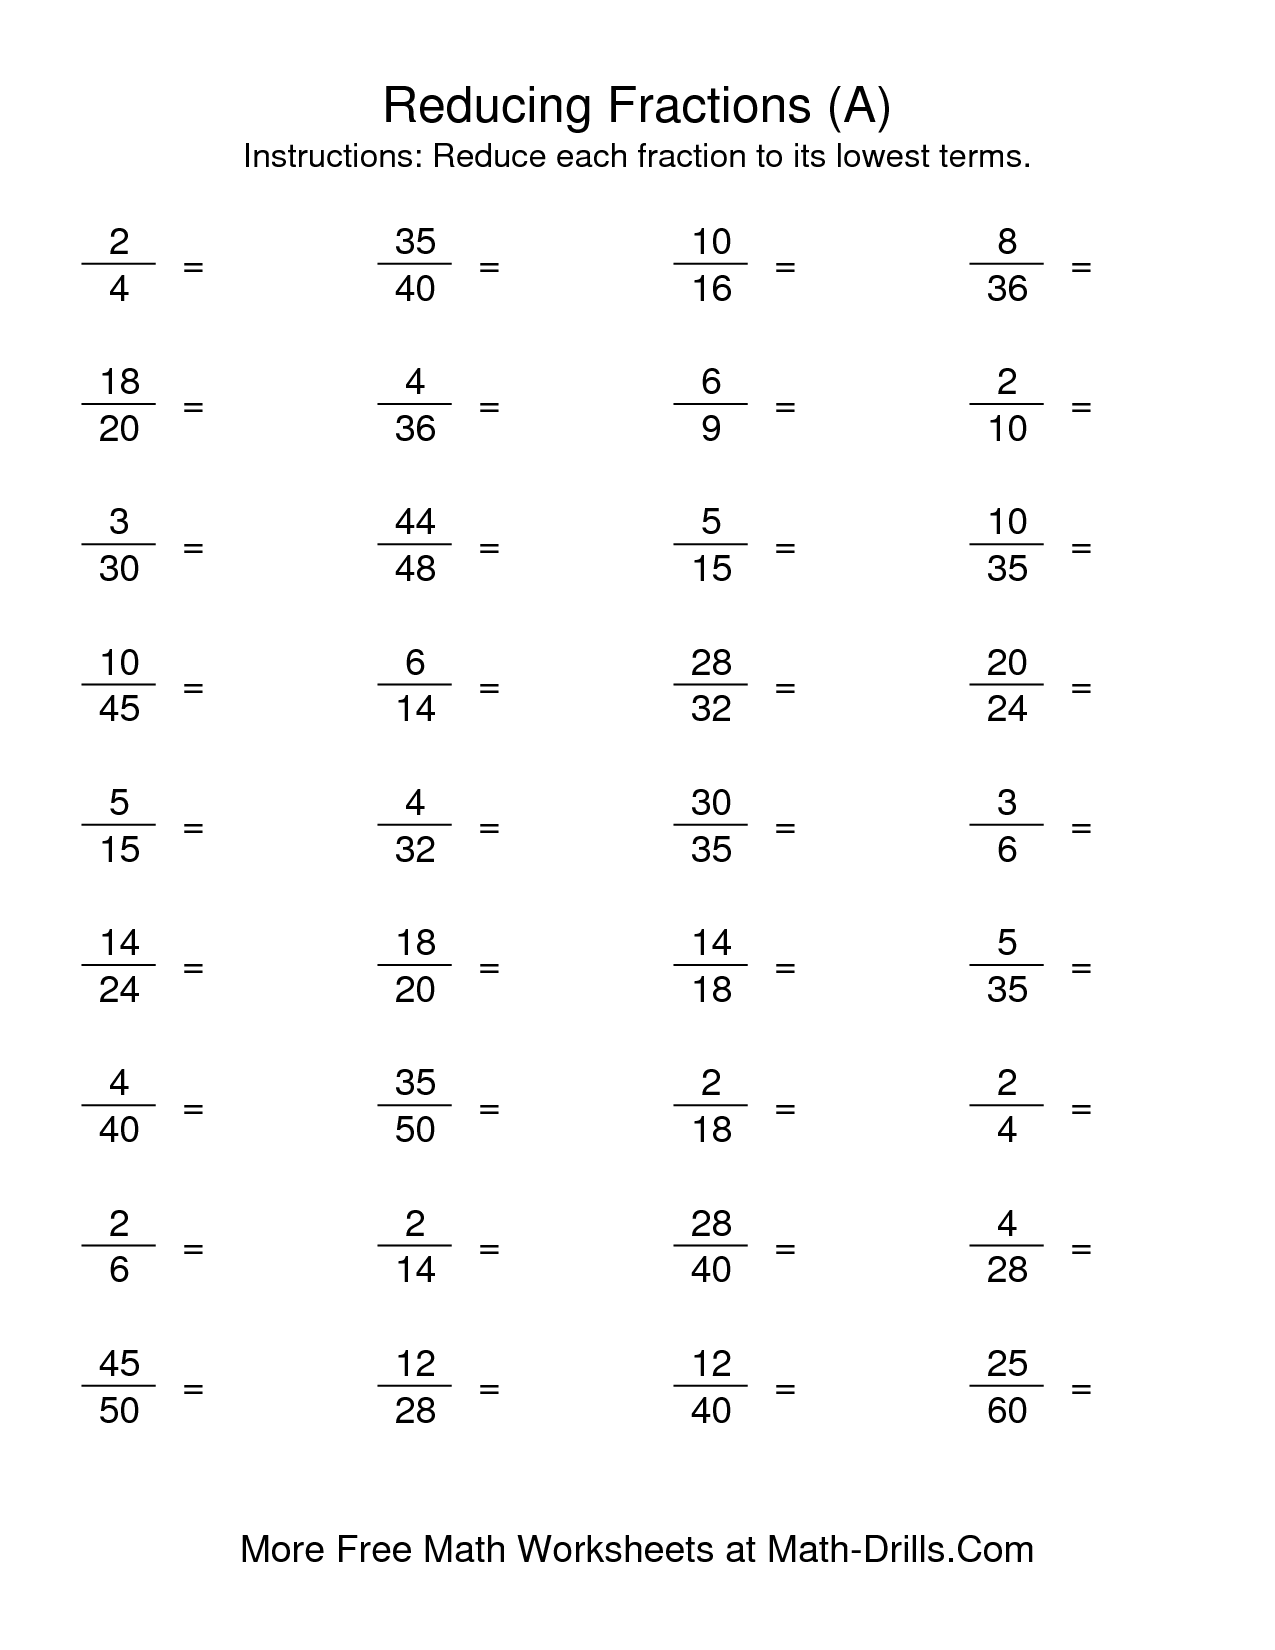 Reducing Fractions With Variables Worksheet 149738